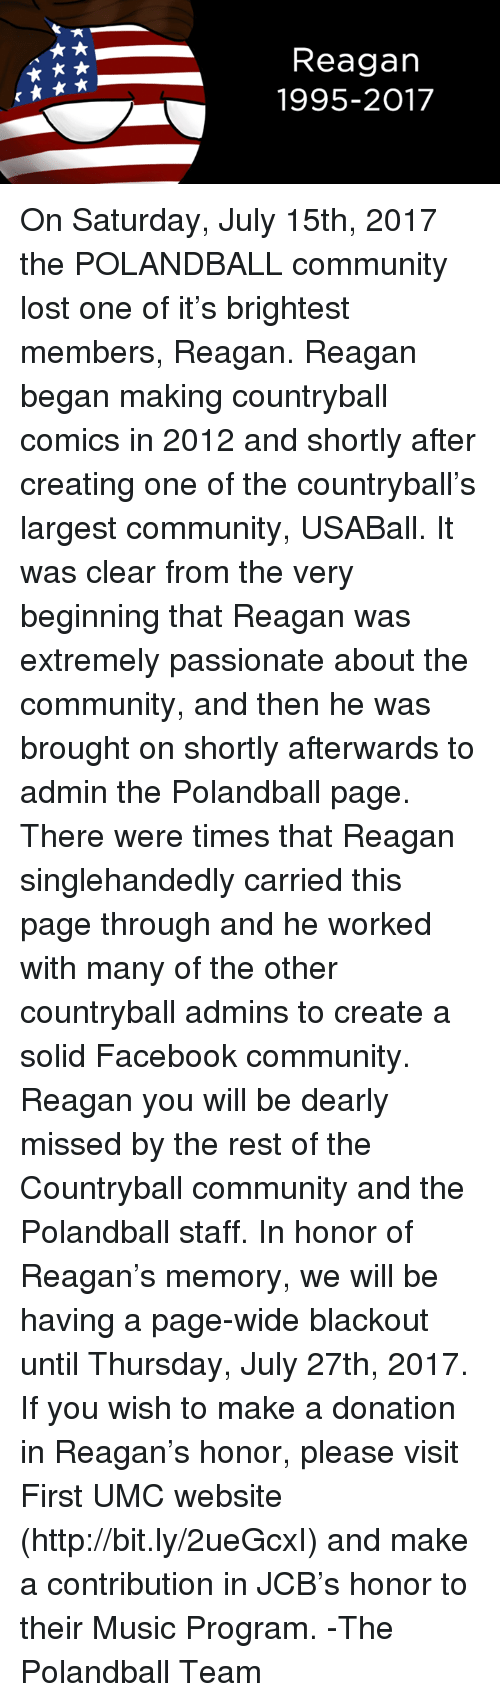 Countryball: Reagan  1995-2017 On Saturday, July 15th, 2017 the POLANDBALL community lost one of it's brightest members, Reagan.   Reagan began making countryball comics in 2012 and shortly after creating one of the countryball's largest community, USABall.  It was clear from the very beginning that Reagan was extremely passionate about the community, and then he was brought on shortly afterwards to admin the Polandball page. There were times that Reagan singlehandedly carried this page through and he worked with many of the other countryball admins to create a solid Facebook community.   Reagan you will be dearly missed by the rest of the Countryball community and the Polandball staff.   In honor of Reagan's memory, we will be having a page-wide blackout until Thursday, July 27th, 2017.  If you wish to make a donation in Reagan's honor, please visit First UMC website (http://bit.ly/2ueGcxI) and make a contribution in JCB's honor to their Music Program.    -The Polandball Team